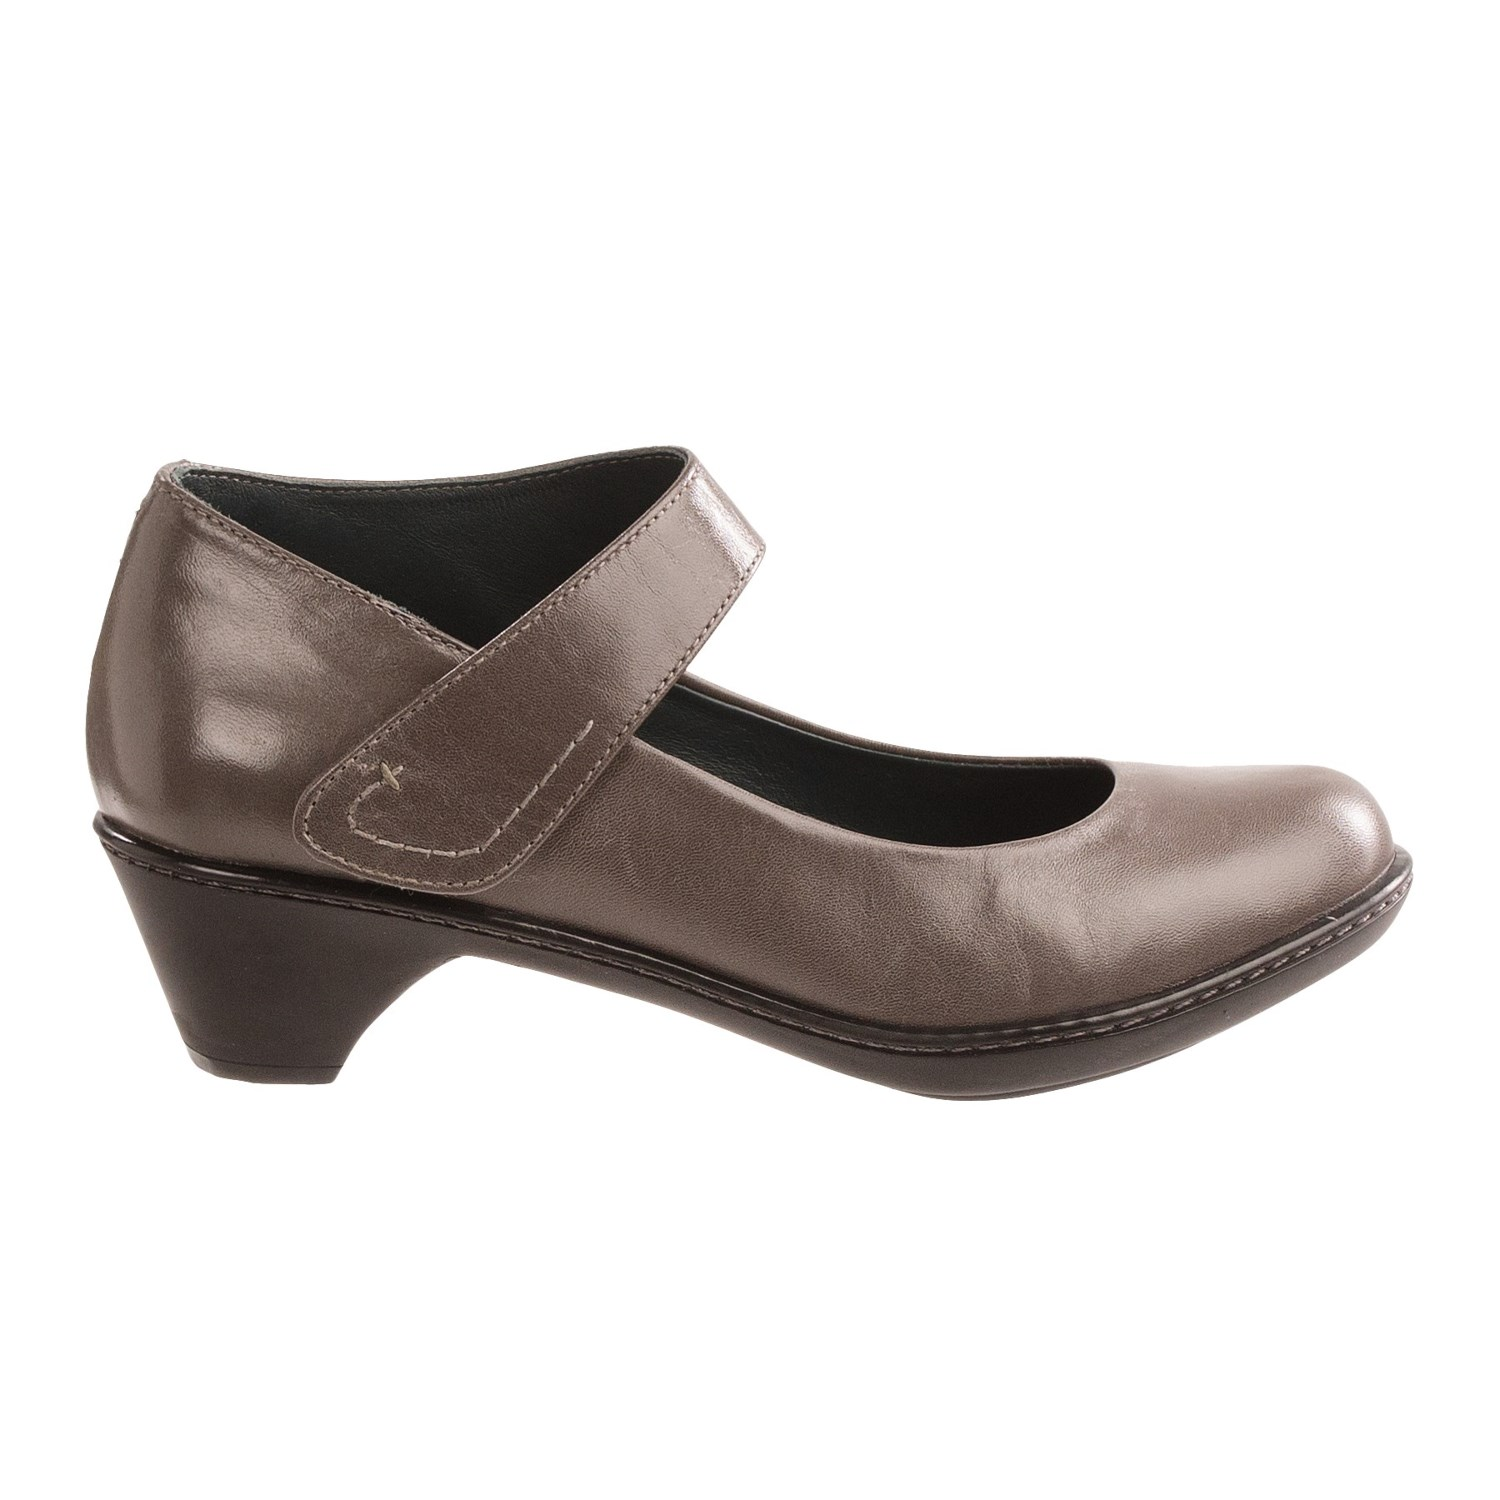 Mary Jane Shoes Online Store